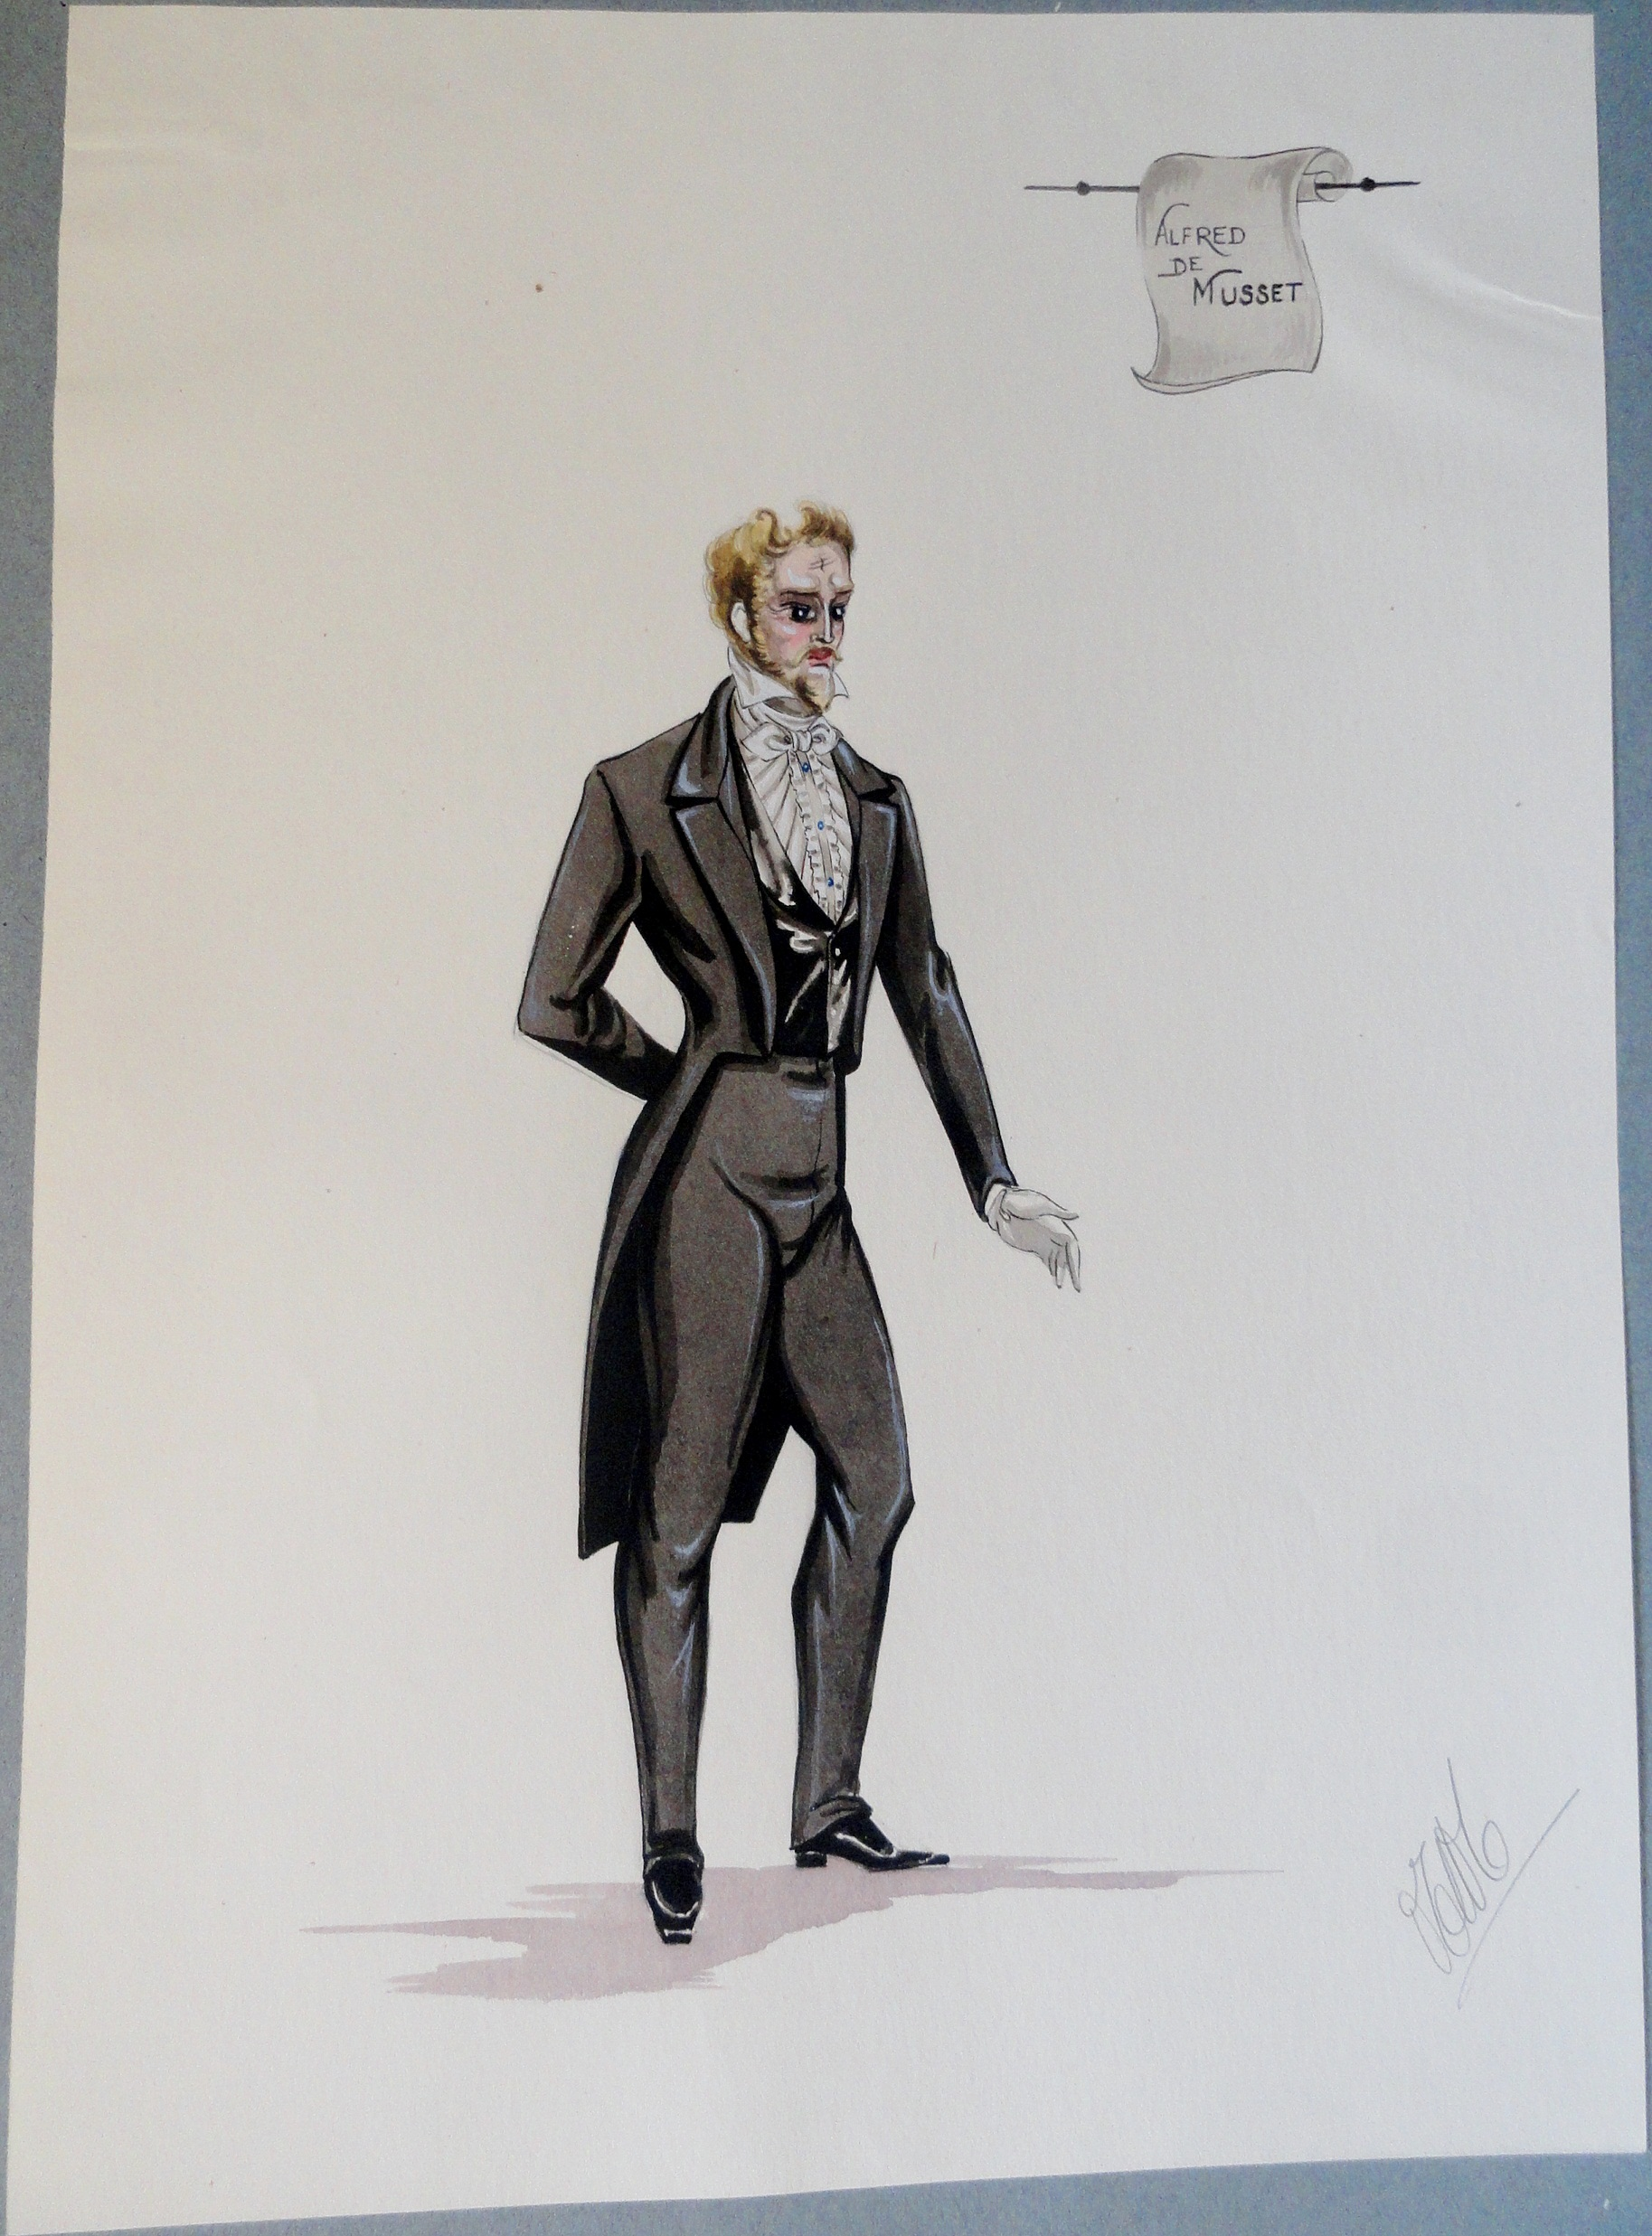 Alfred de Musset. Pen and Ink and Watercolor. From the Rachel Portfolio by Owen Hyde Clark. $300.00.